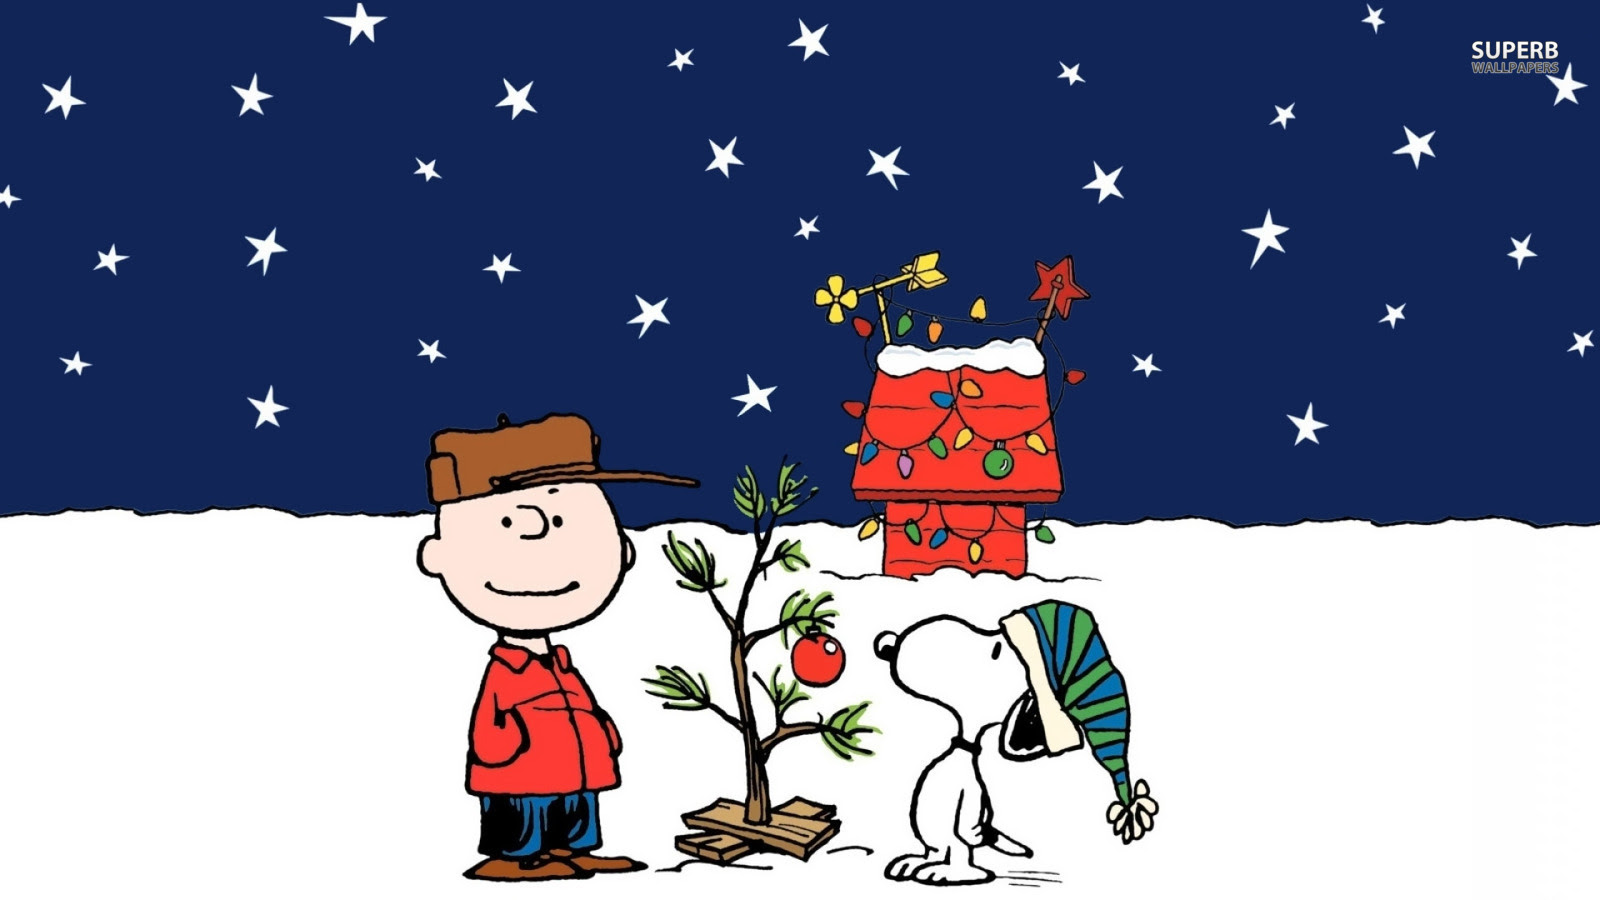 A Charlie Brown Christmas Snoopy Wallpaper 38672259 Fanpop